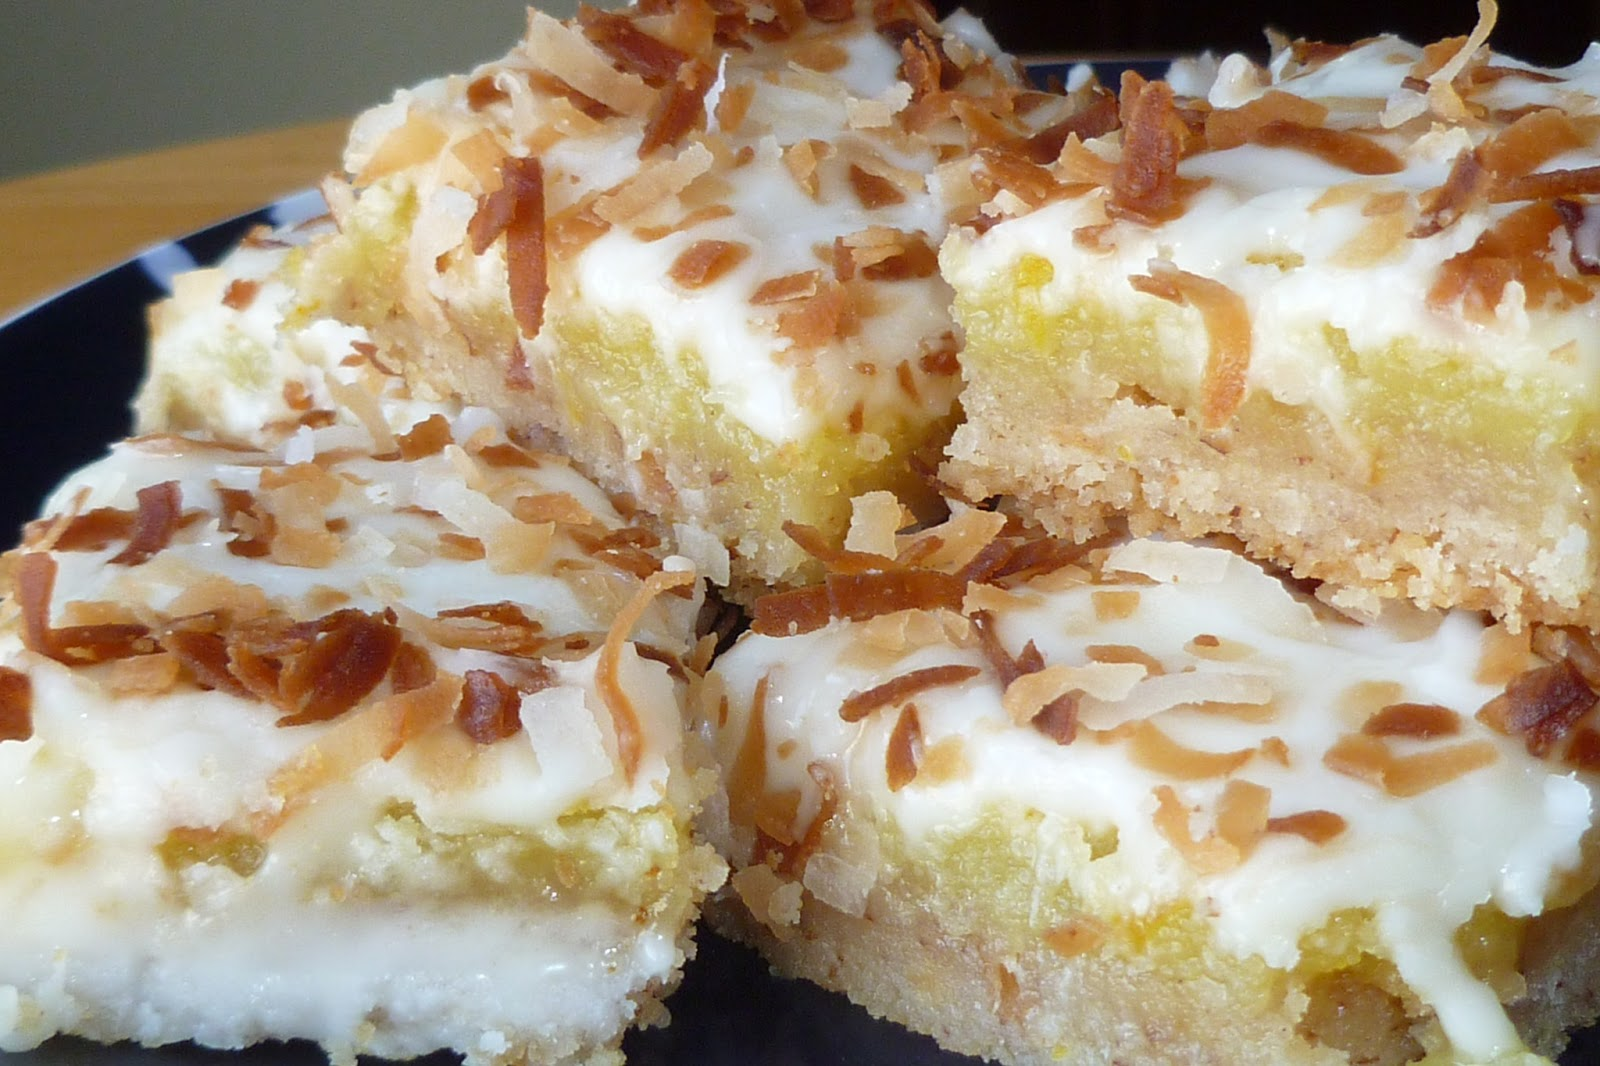 The Pastry Chef's Baking: Pecan-Crusted, Coconut-Topped Lemon Bars